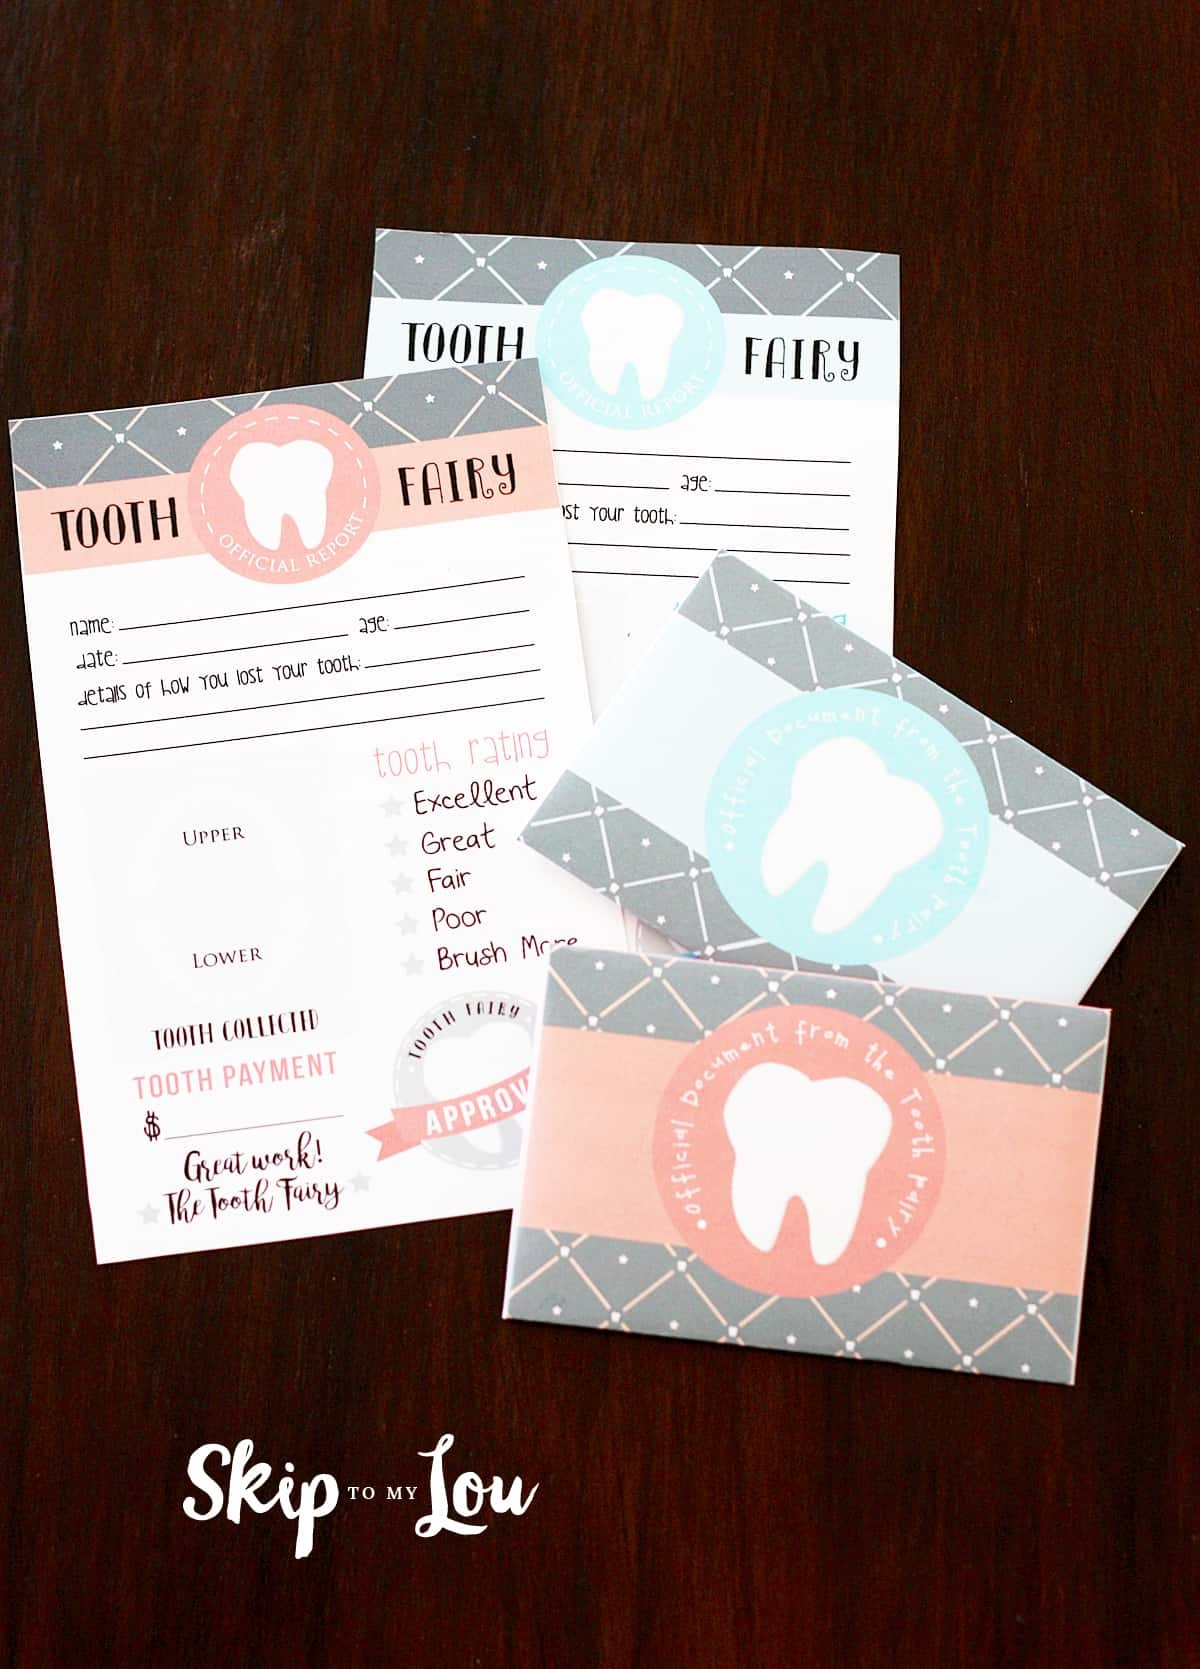 Free Printable Tooth Fairy Letter With Matching Enevelopes   Skip To - Free Printable Tooth Fairy Letter And Envelope